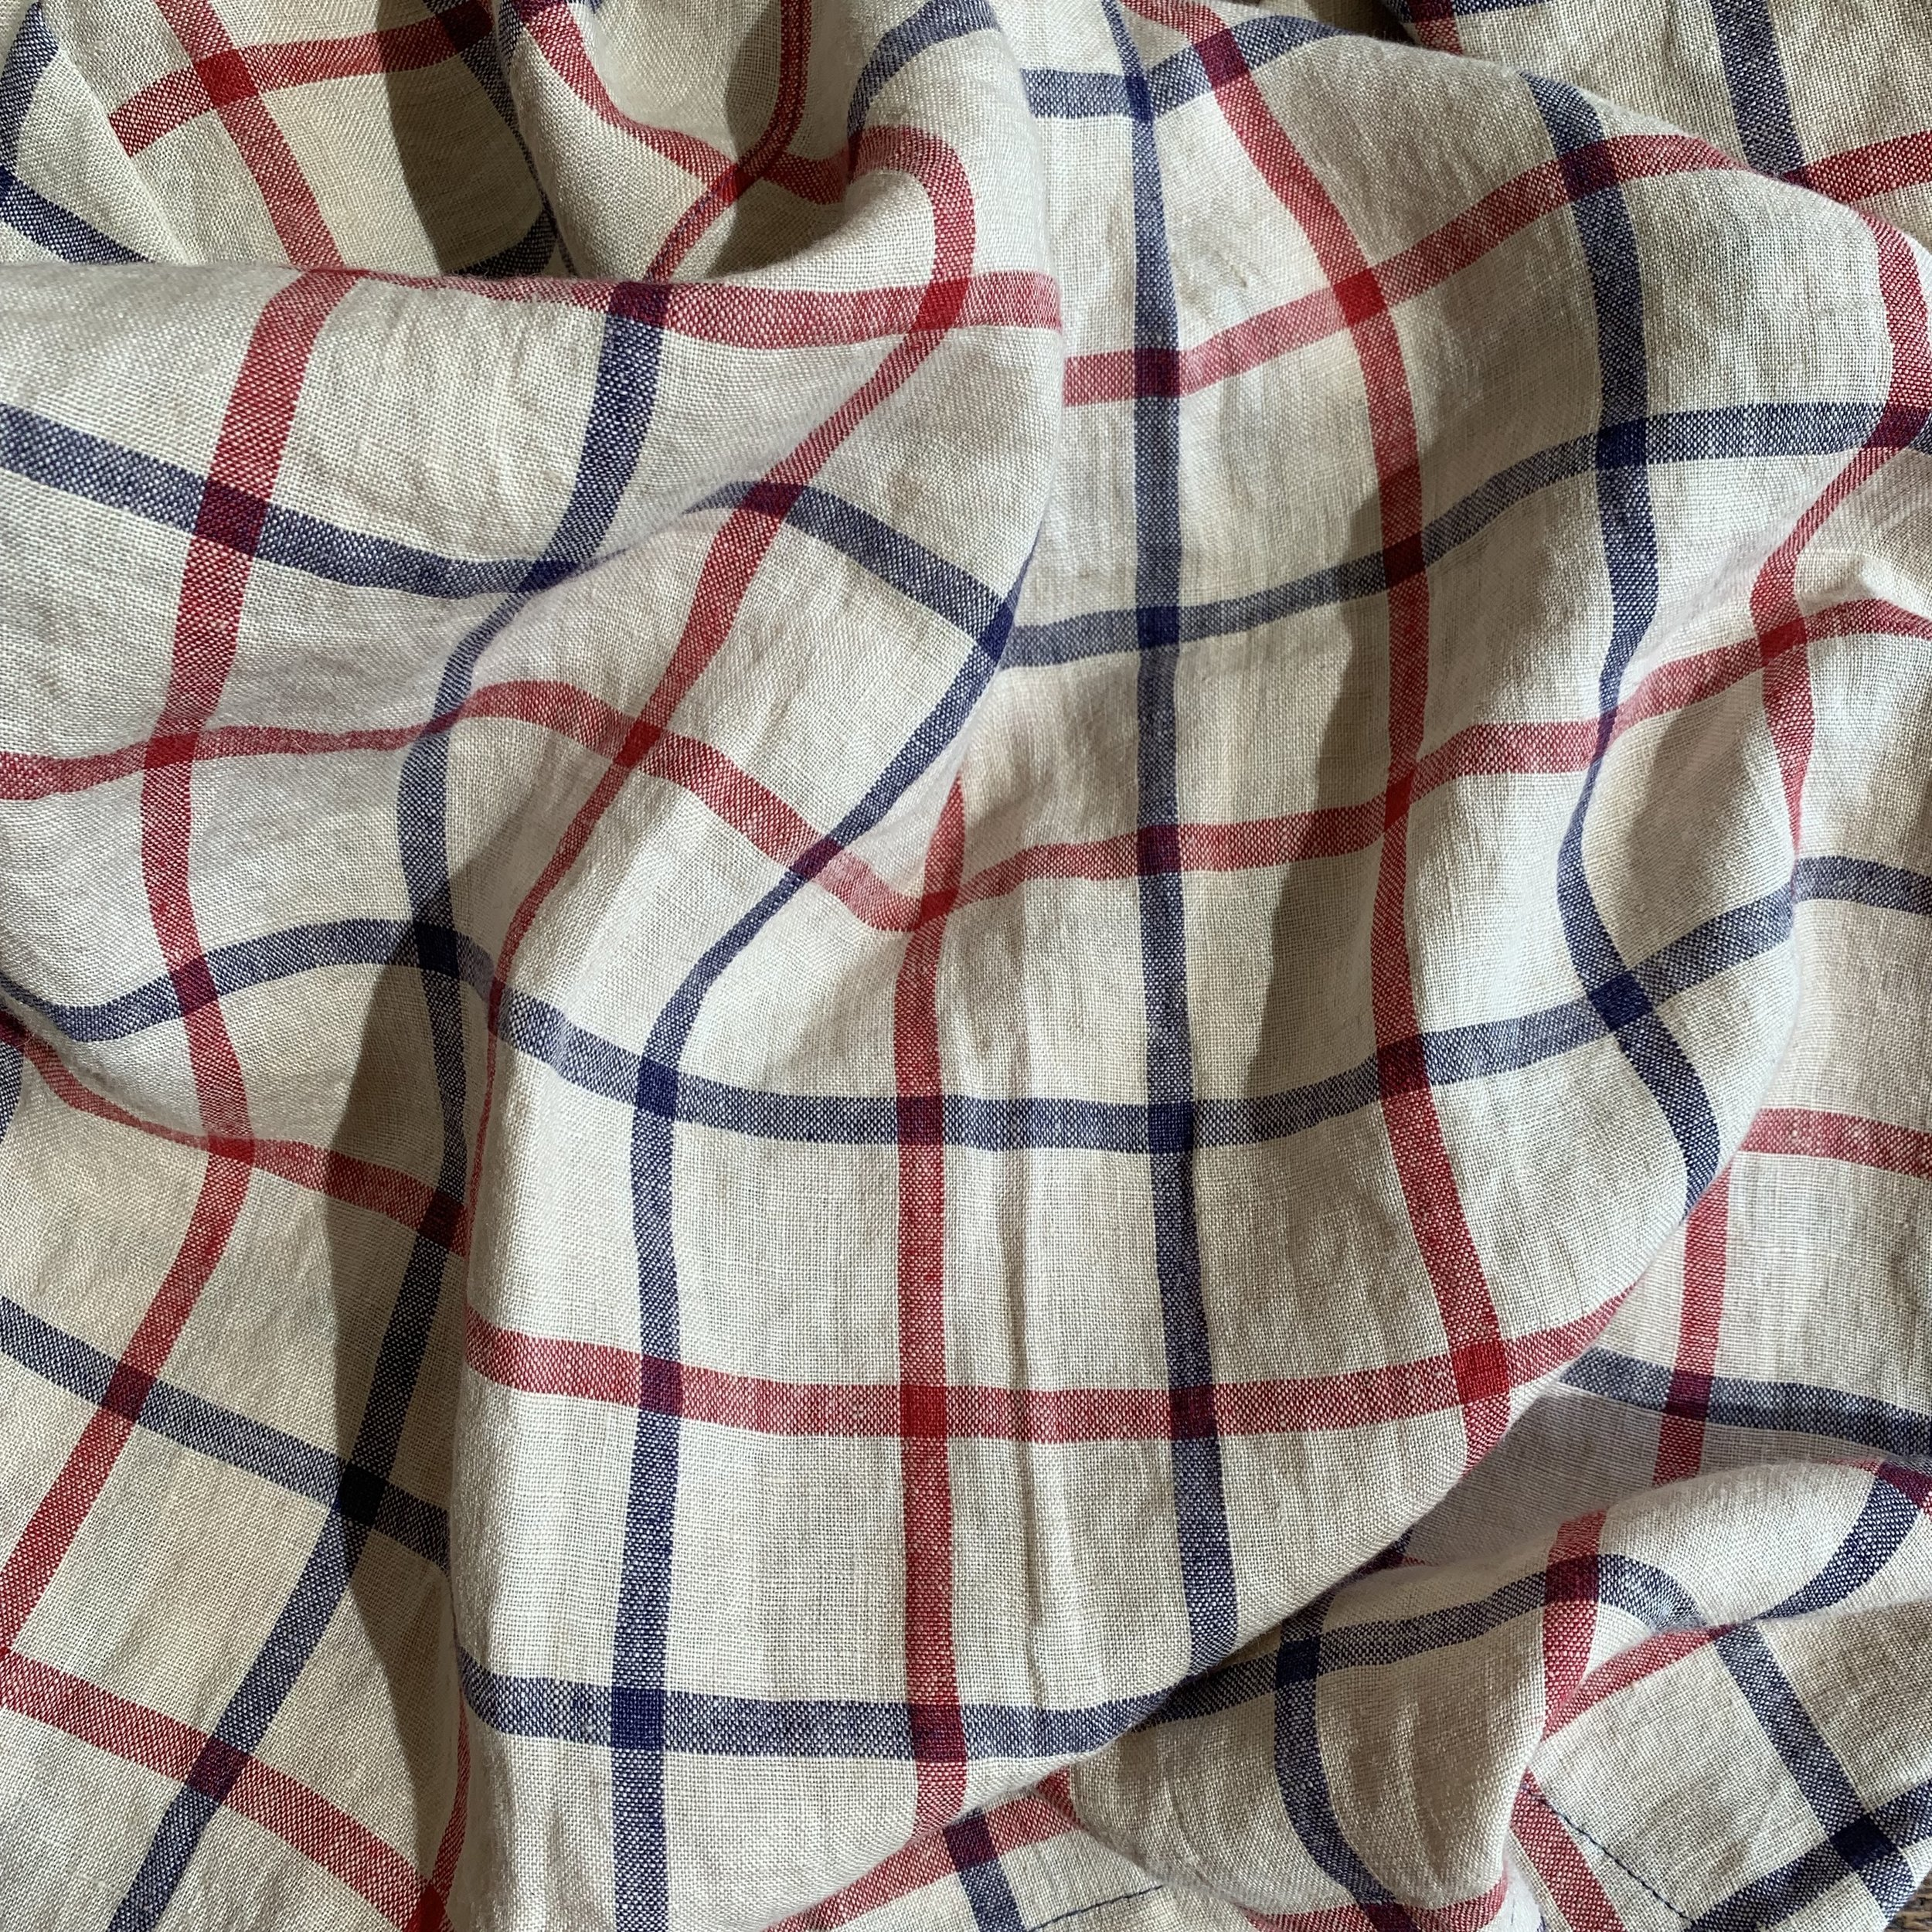 Our linen design arrives! After months of dreaming, sketching, designing, it is finally here.